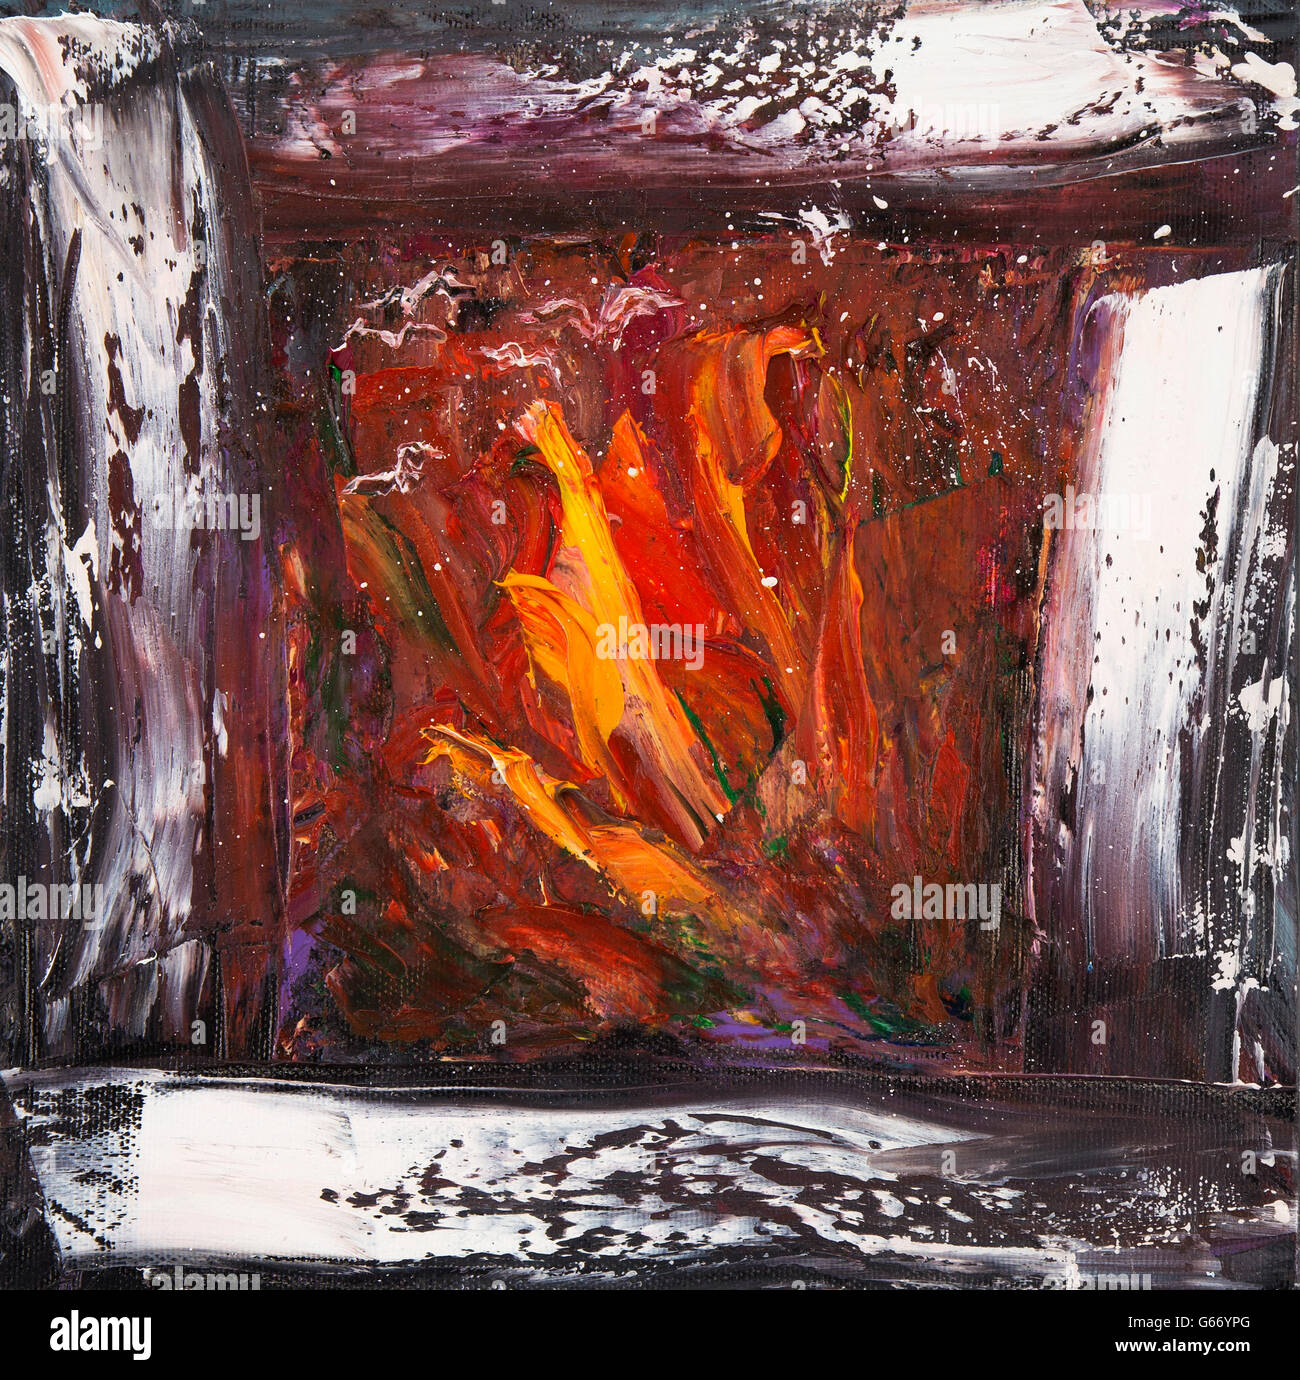 original abstract oil painting showing warm and cosy fireplace